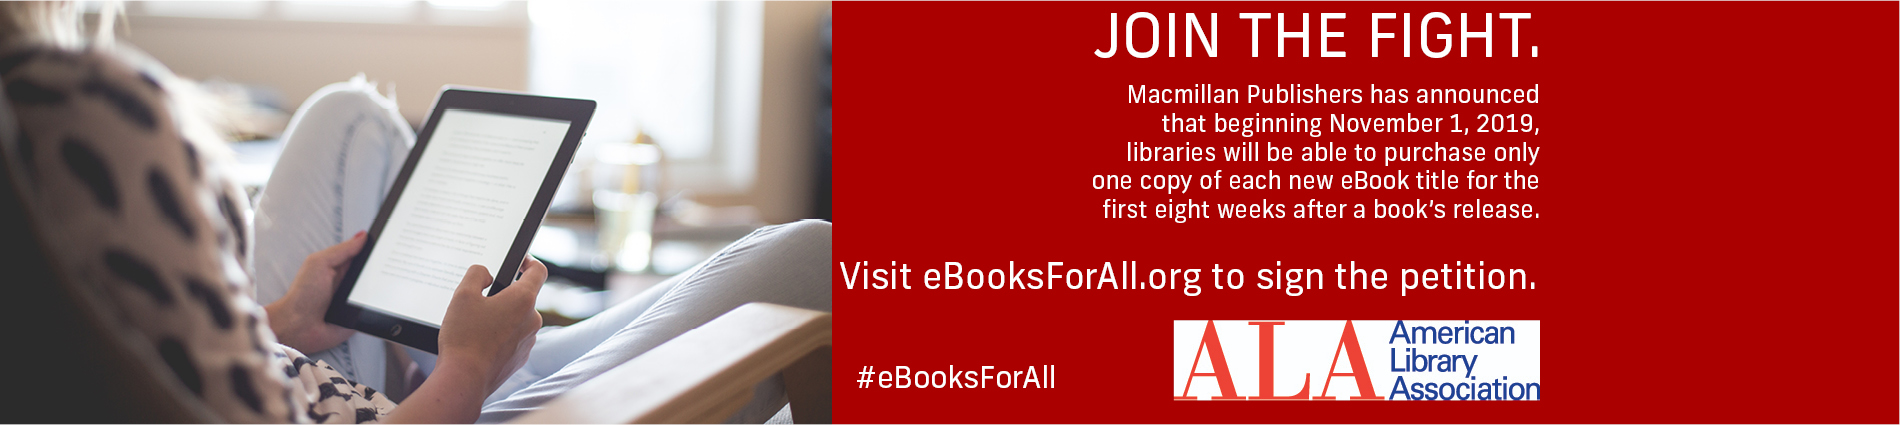 Visit eBooksForAll.org to sign the petition to keep eBooks accessible to everyone.